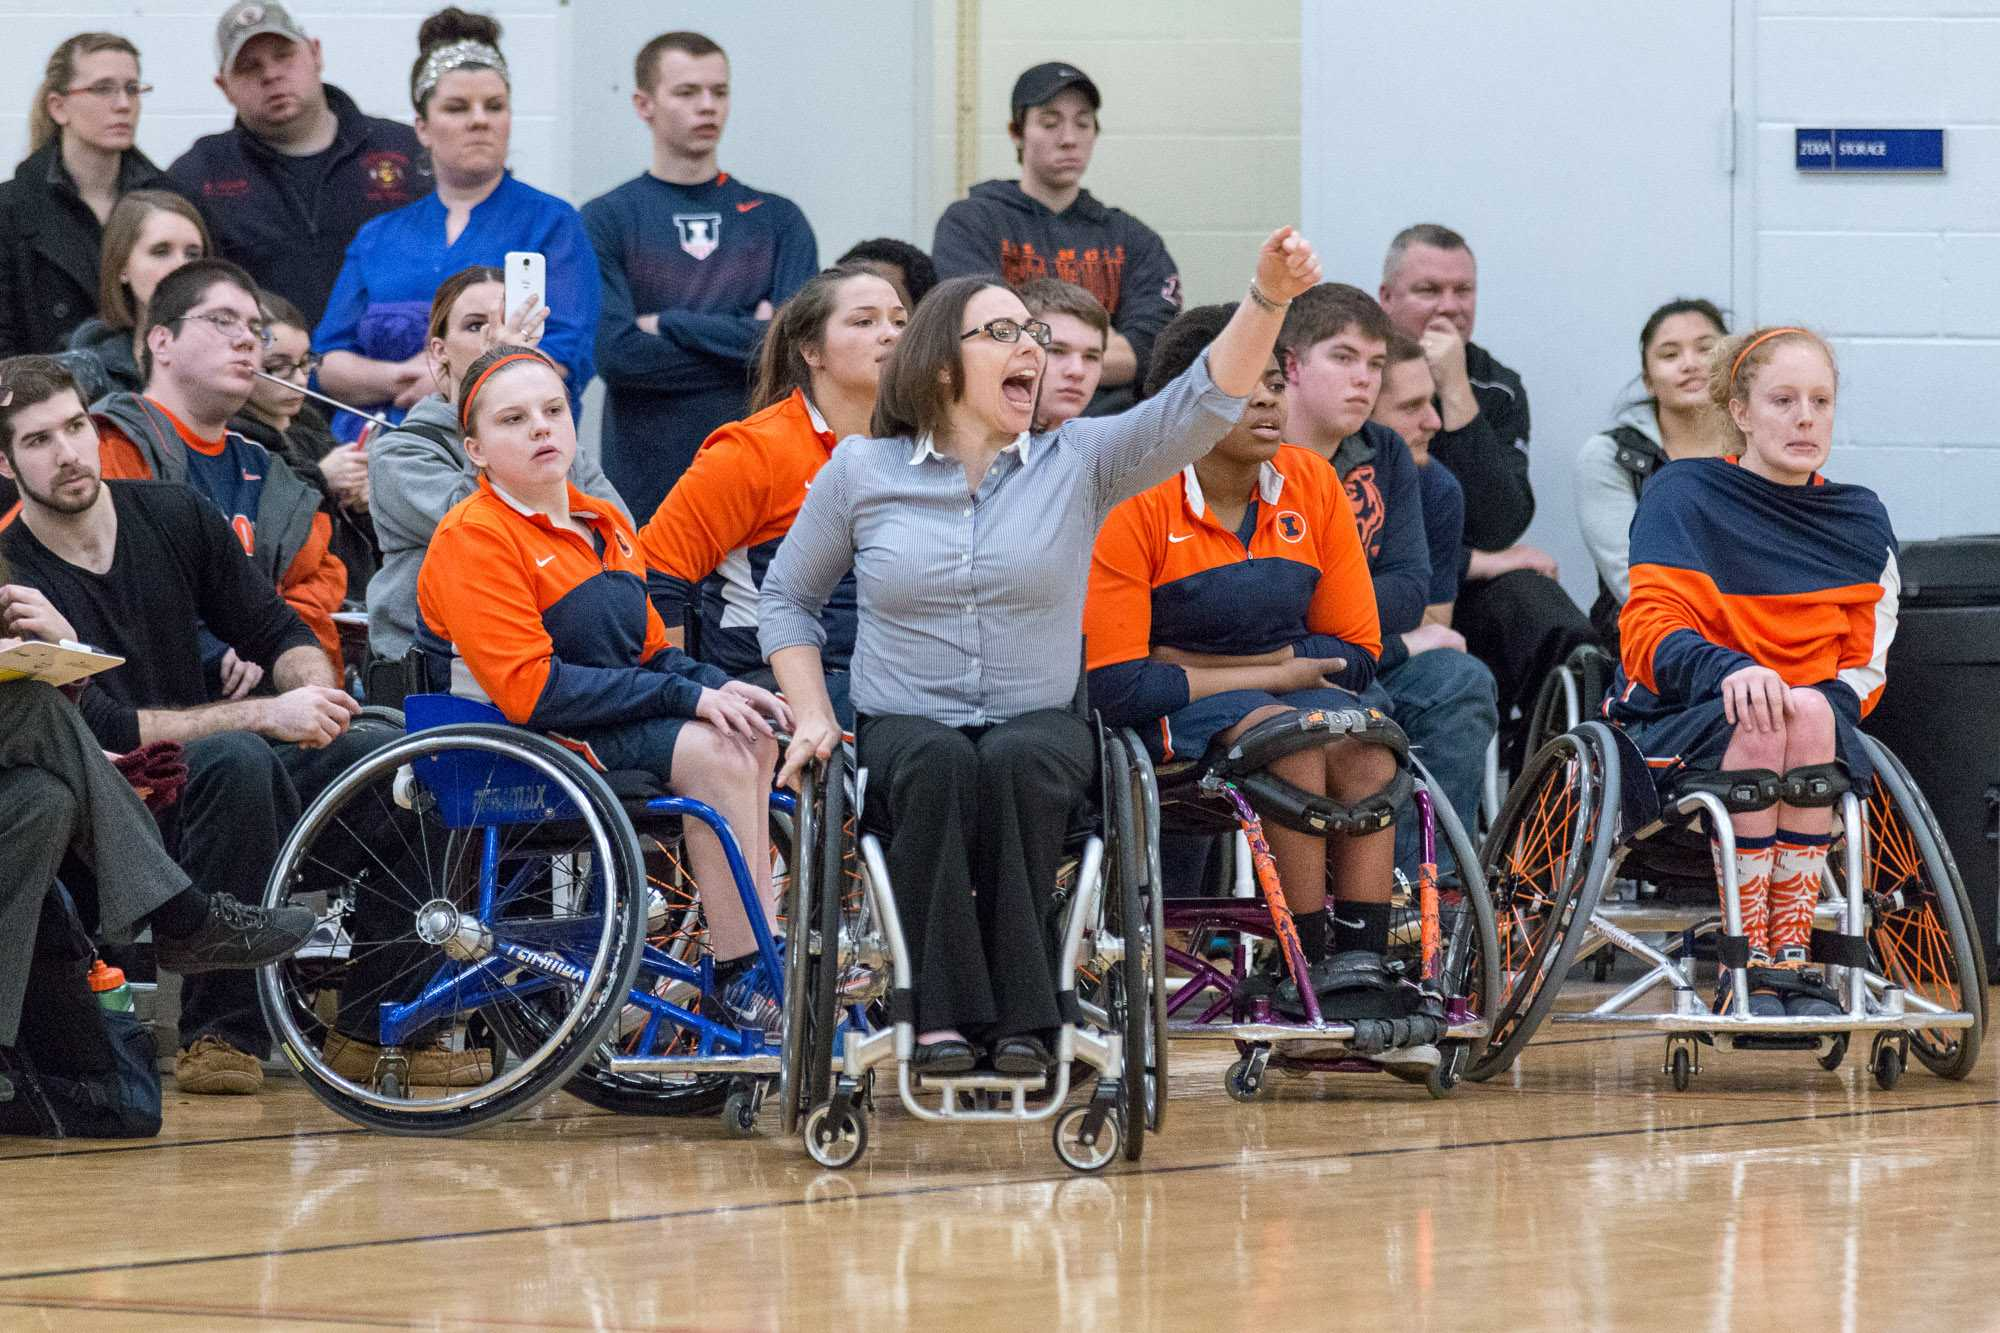 Illinois head coach Stephanie Wheeler shouts instructions to her team during the game against Alabama at the Activities and Recreation Center on February 12. The Illini won 56-47.